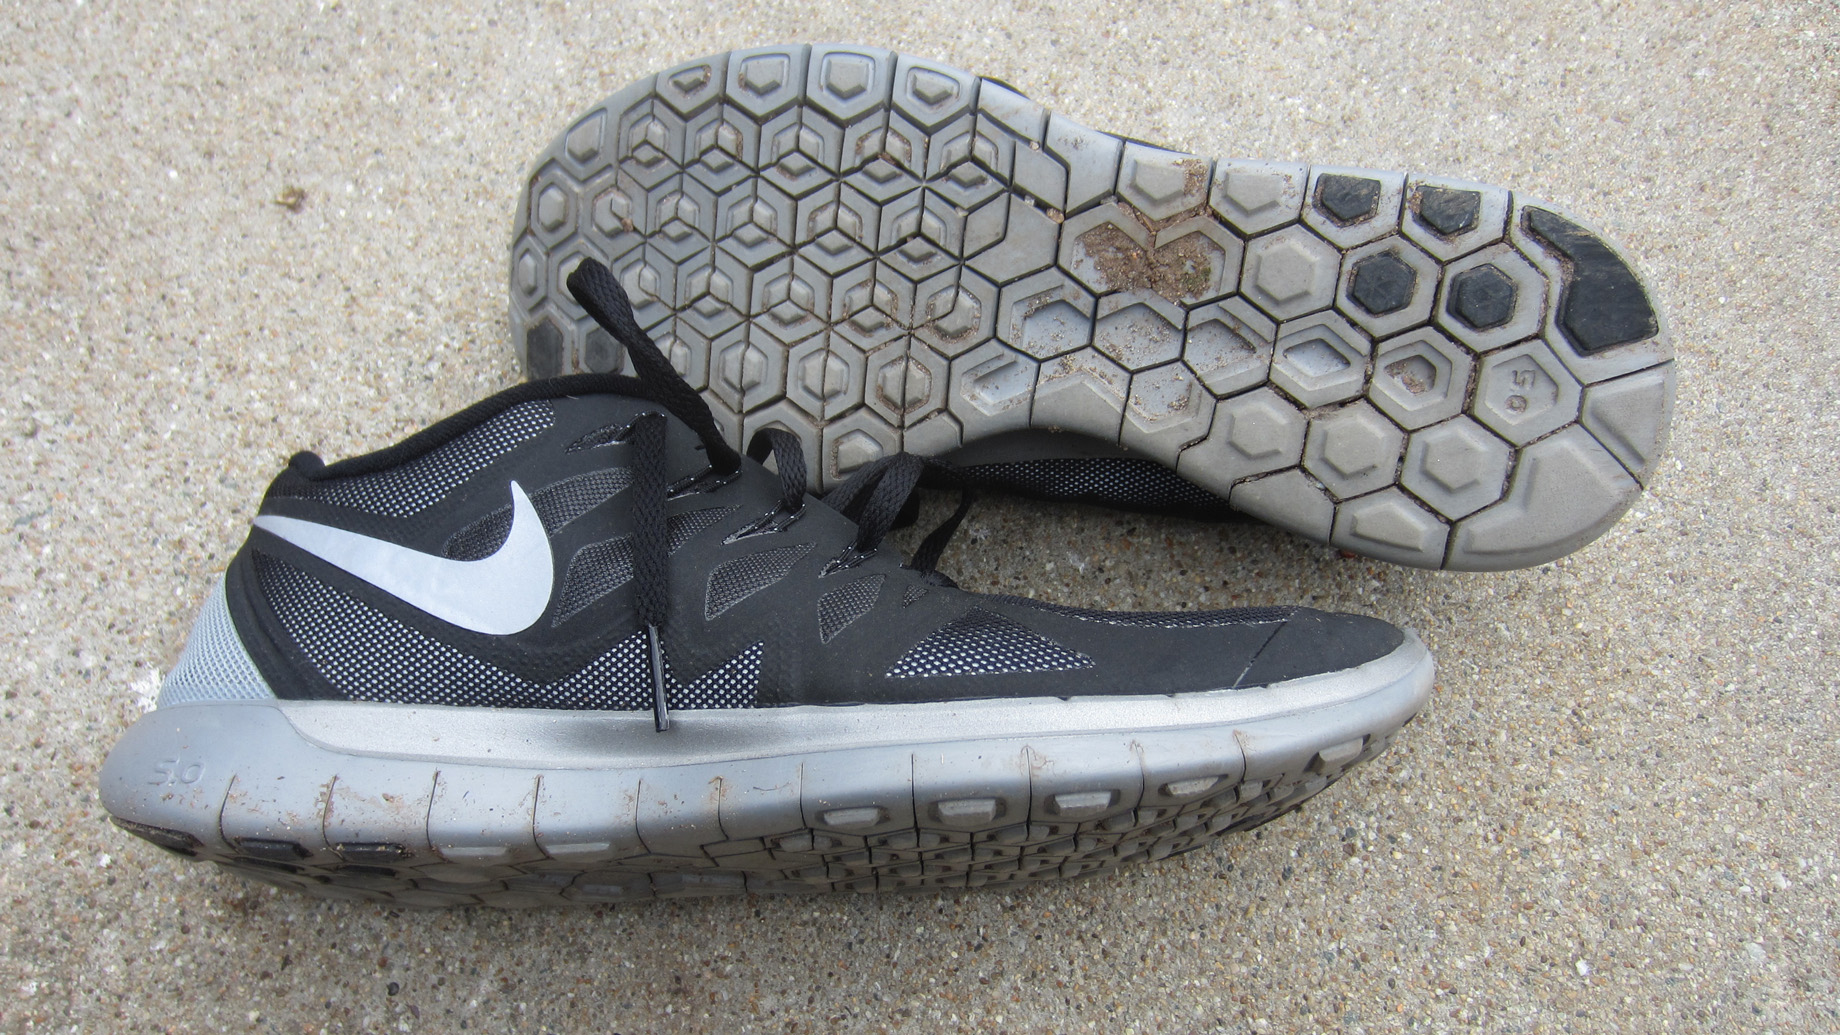 timeless design 9e861 c4a52 Nike Free 5.0 Flash Review | Gear Institute